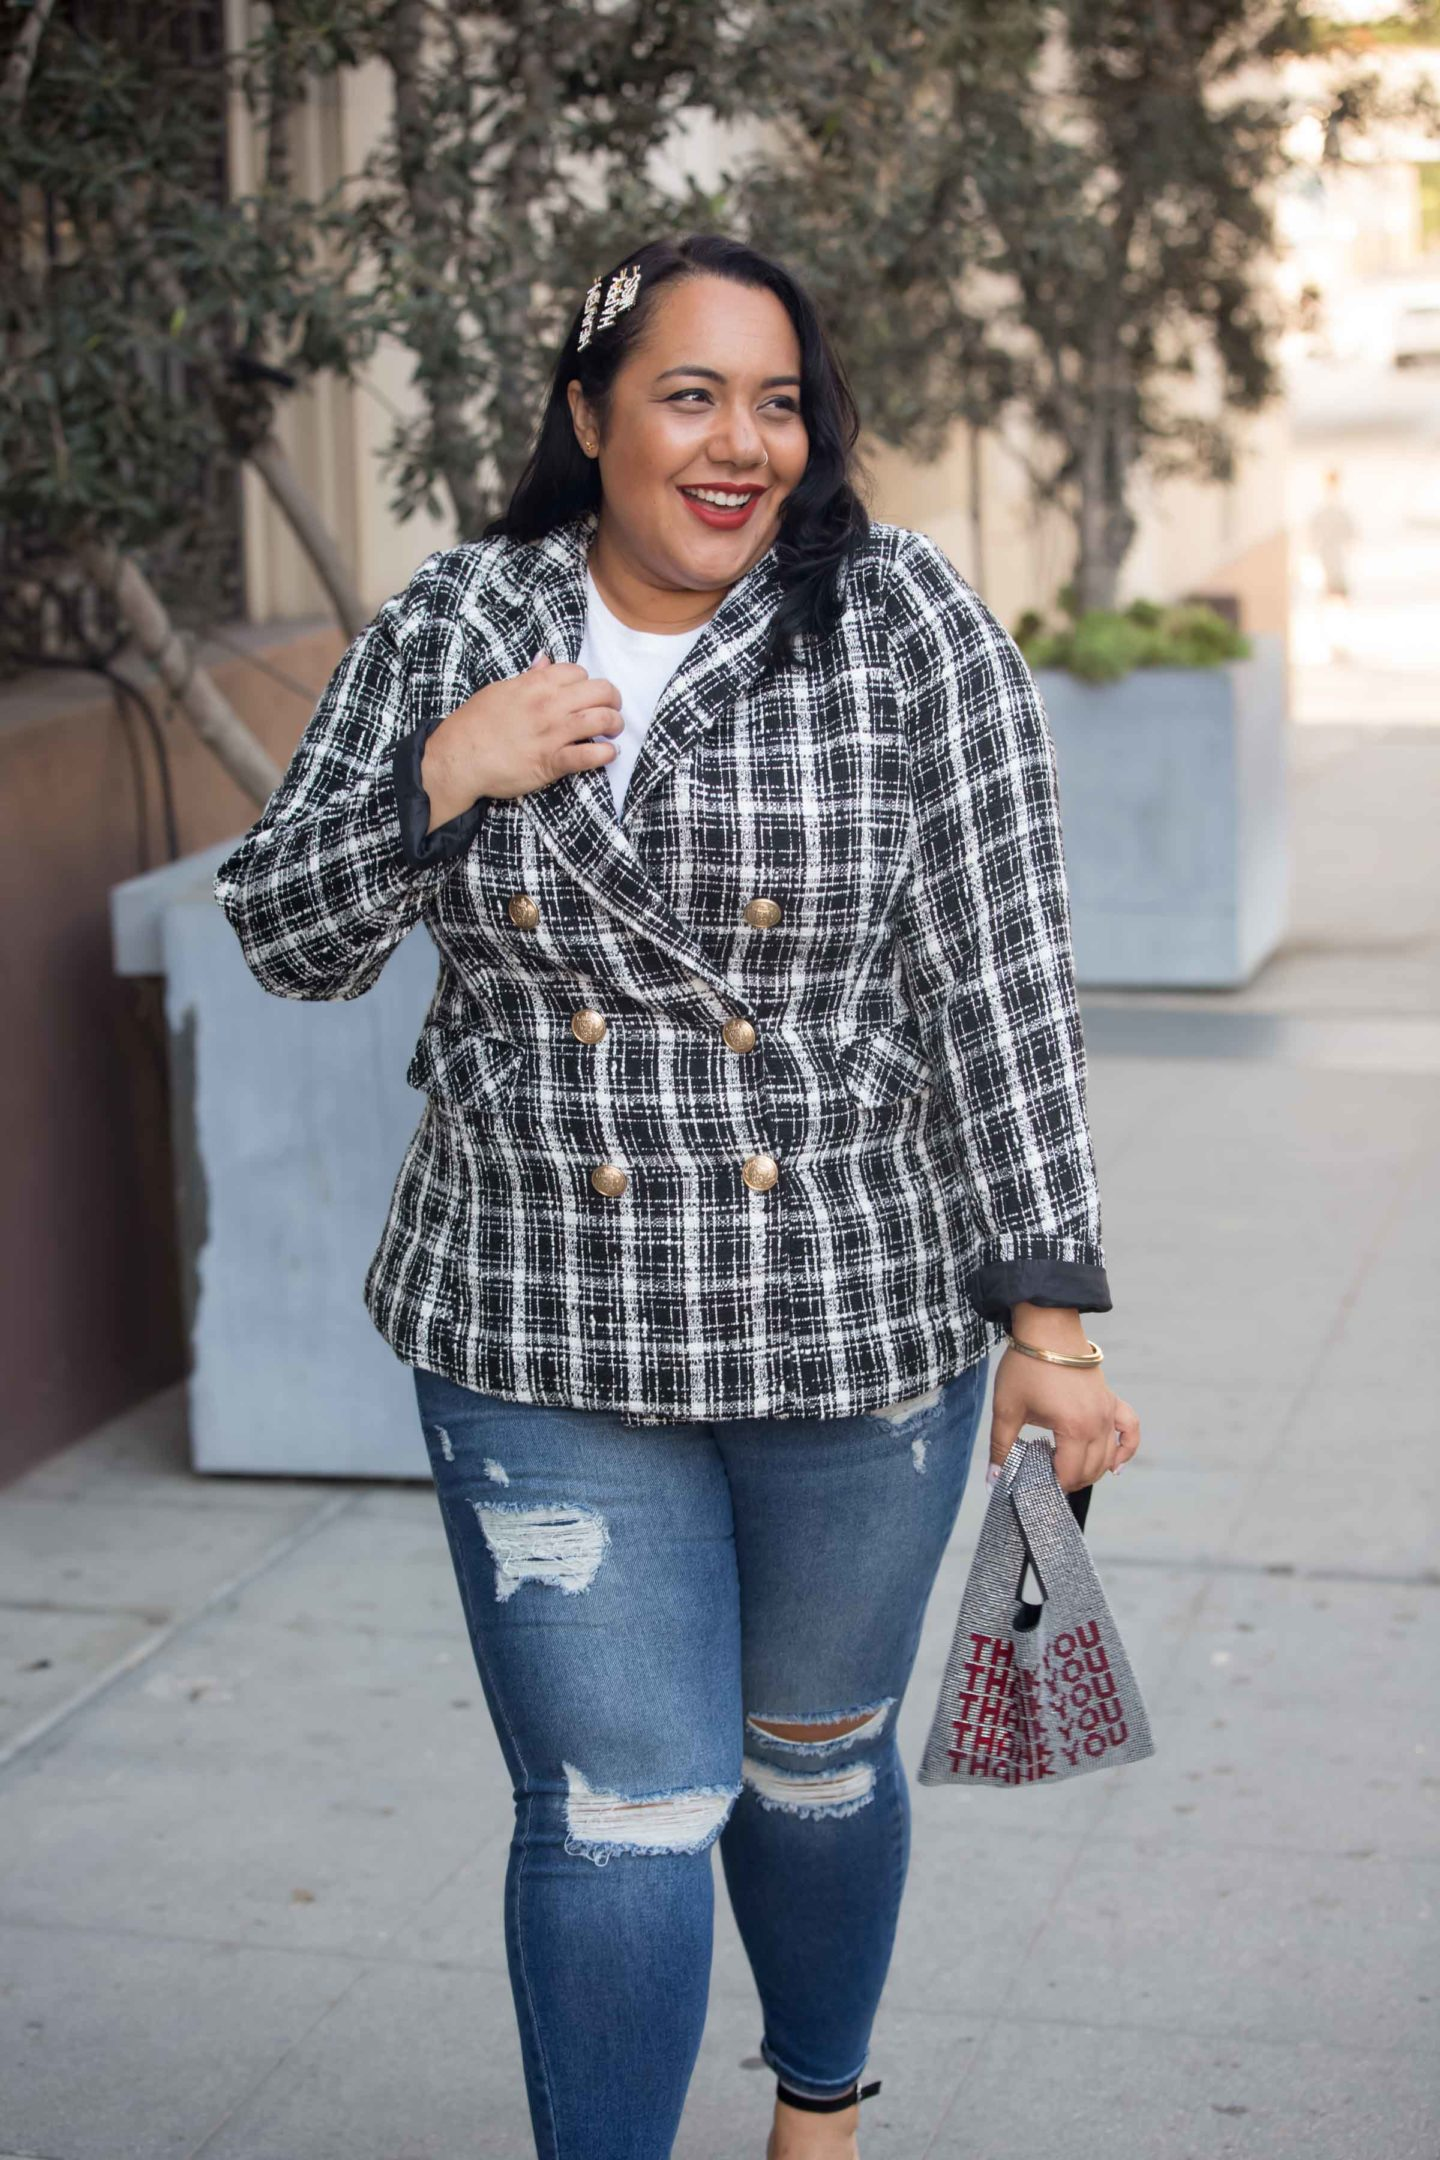 Amy Stretten, The Chief of Style, in a lane bryant blazer and plus size distressed jeans and a rhinestone thank you bag